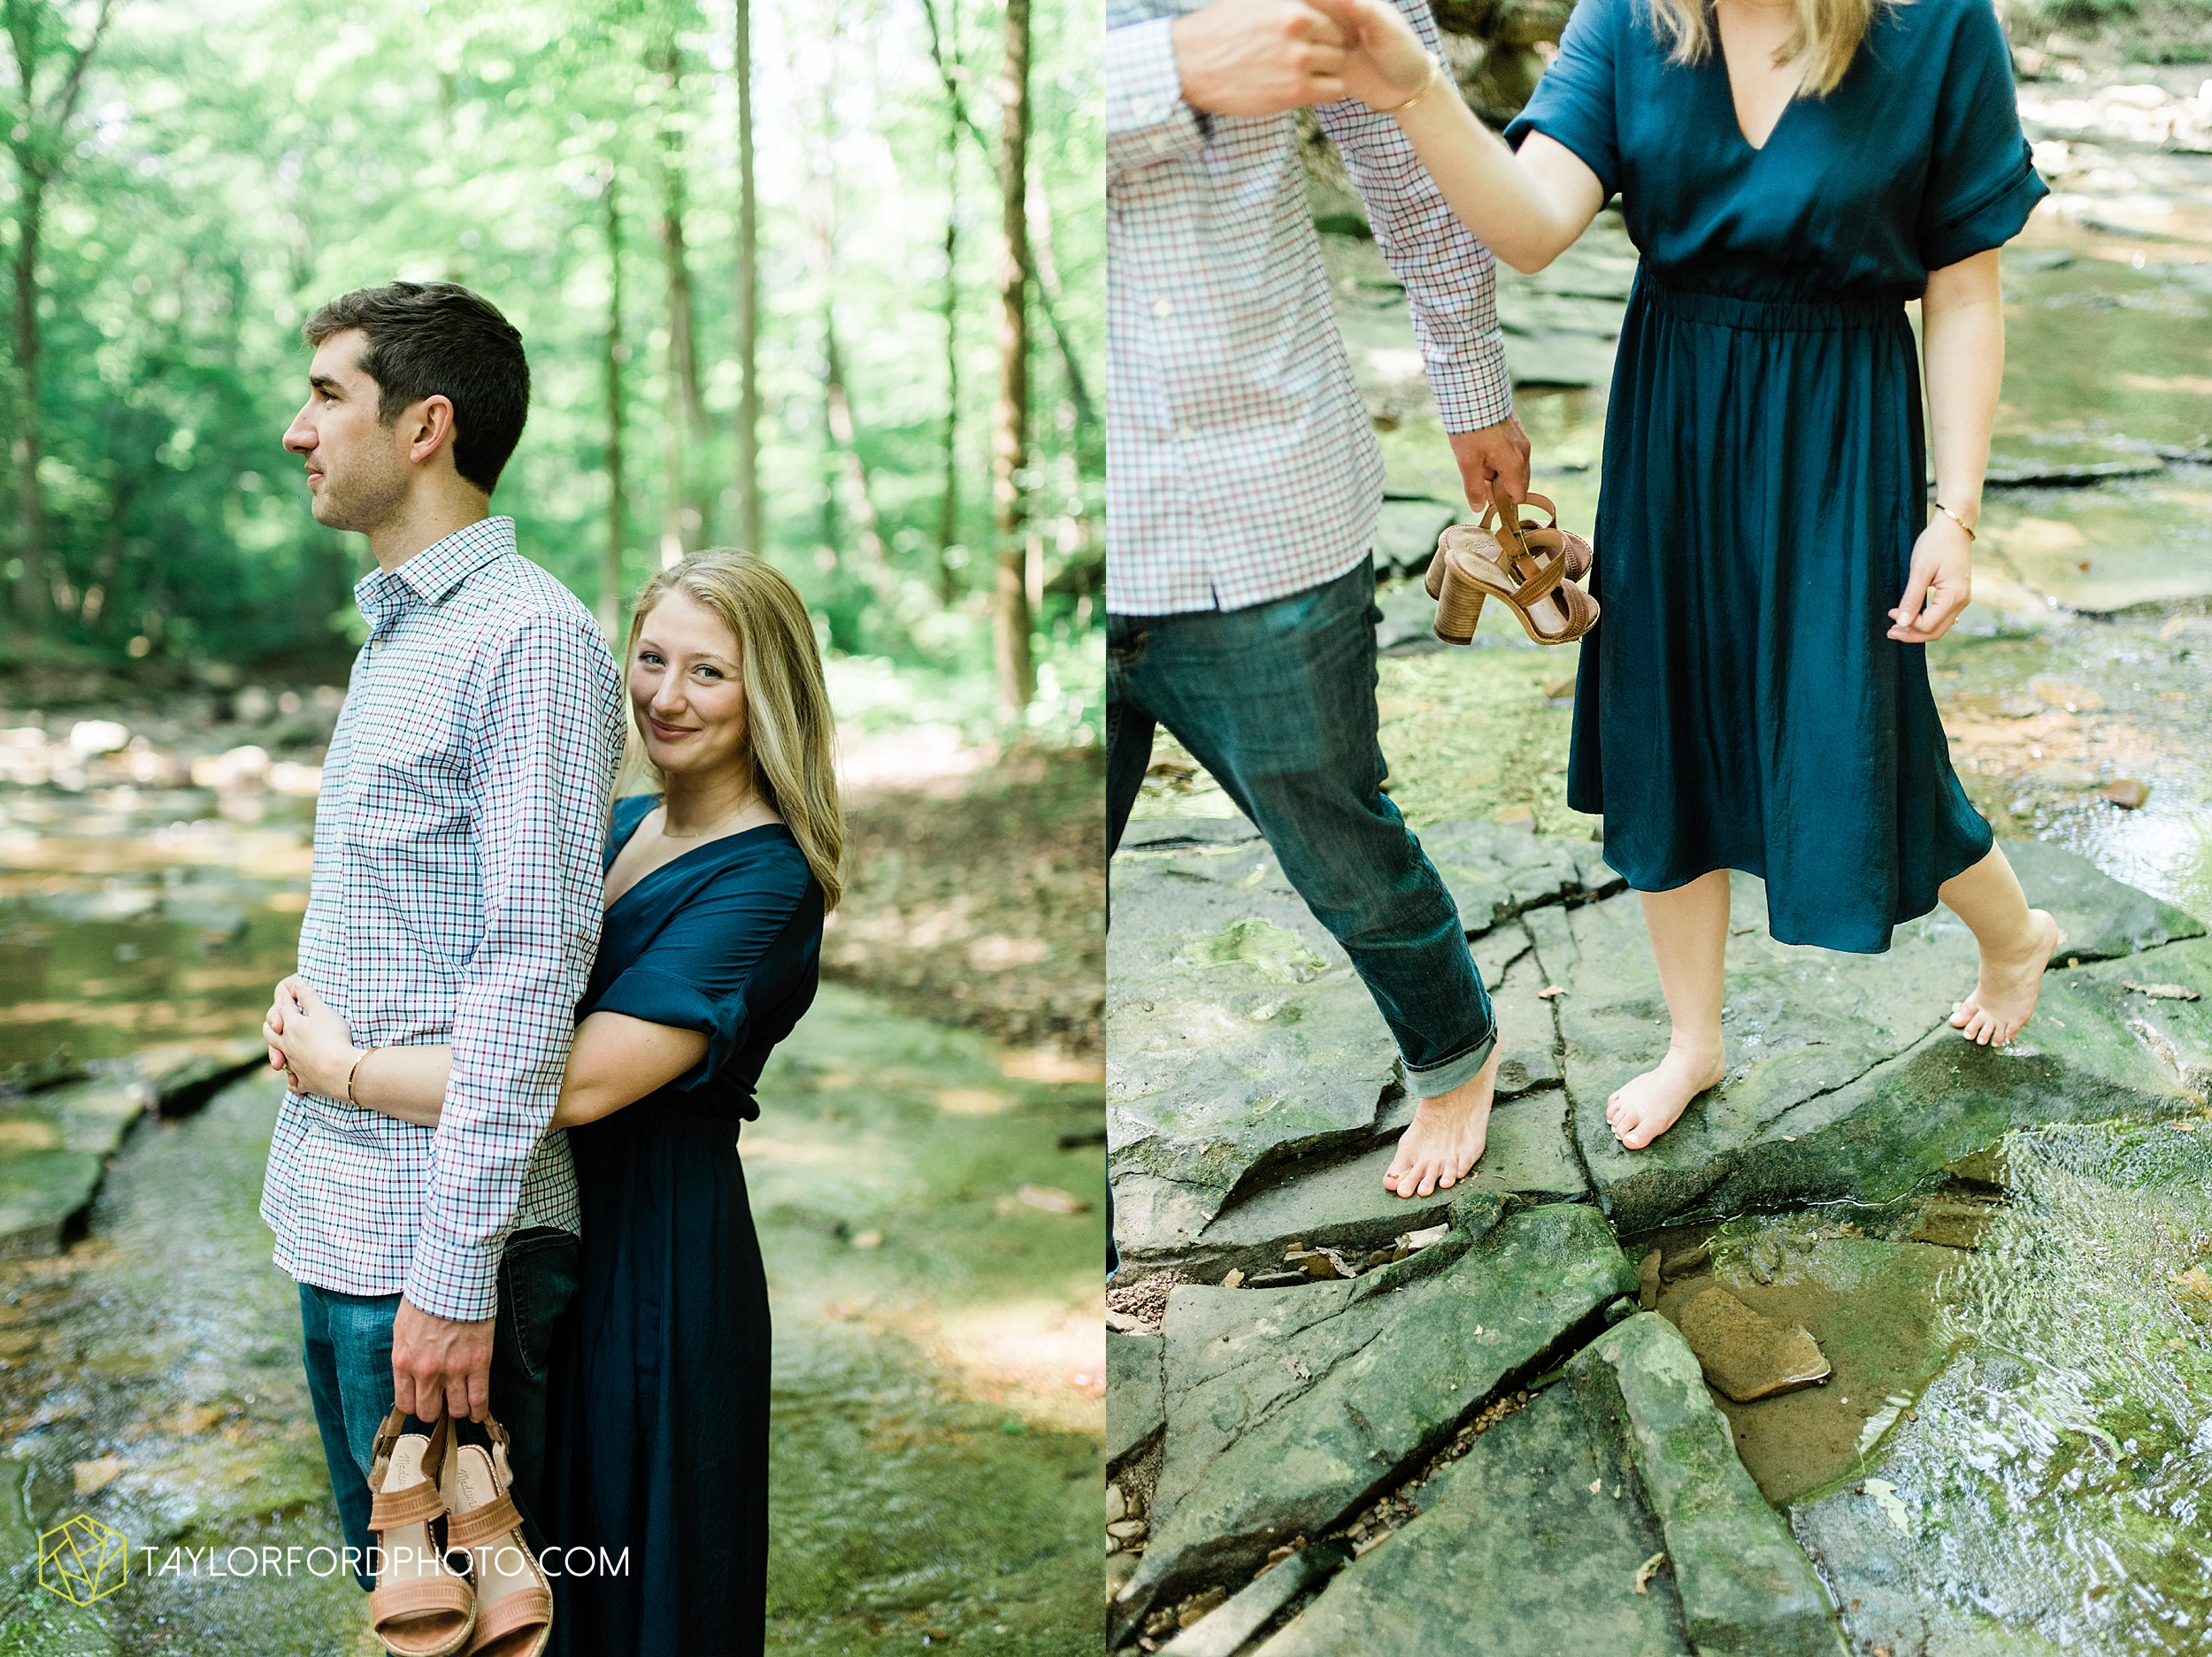 margo-evan-kohler-south-chagrin-reservation-chagrin-falls-cleveland-ohio-engagement-wedding-photographer-Taylor-Ford-Photography_8182.jpg